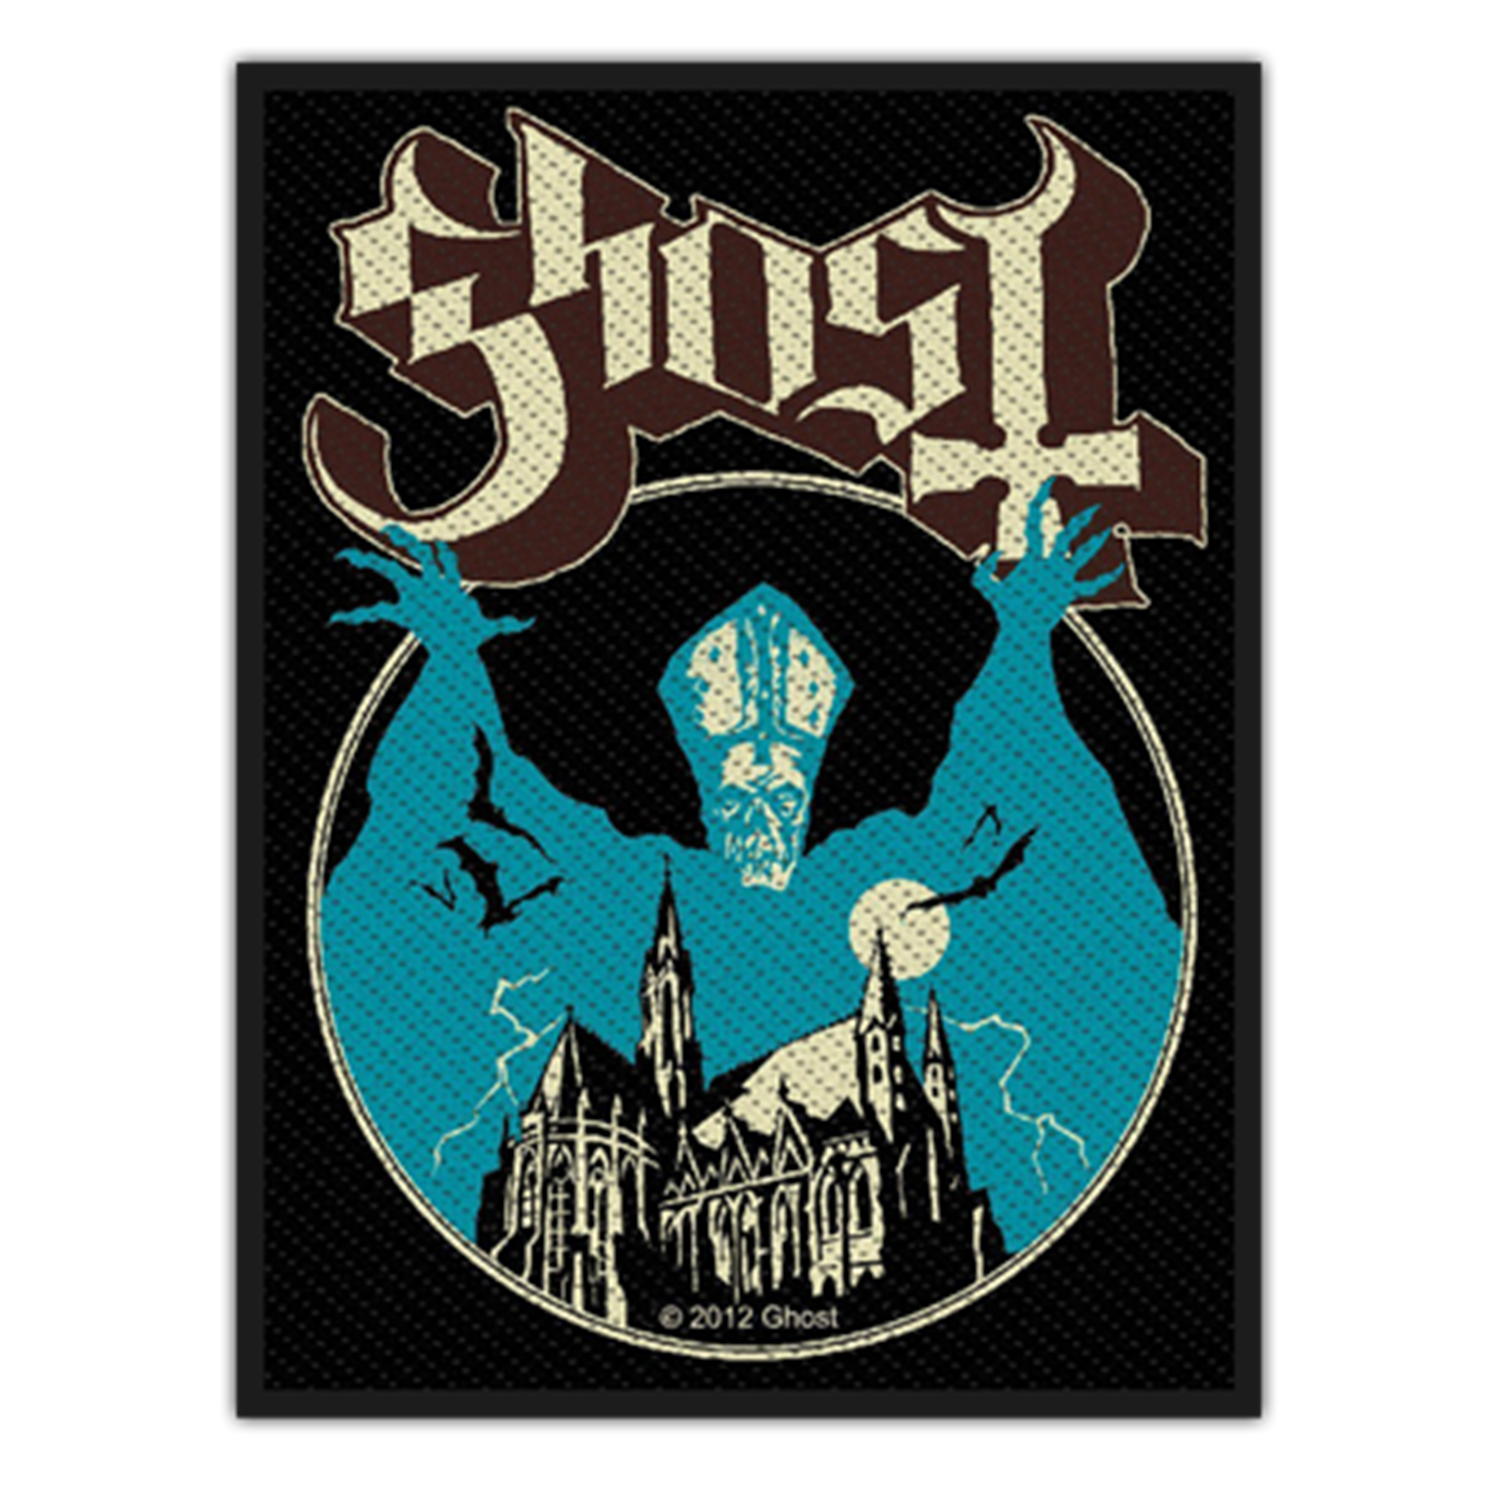 Opus Eponymous Patch